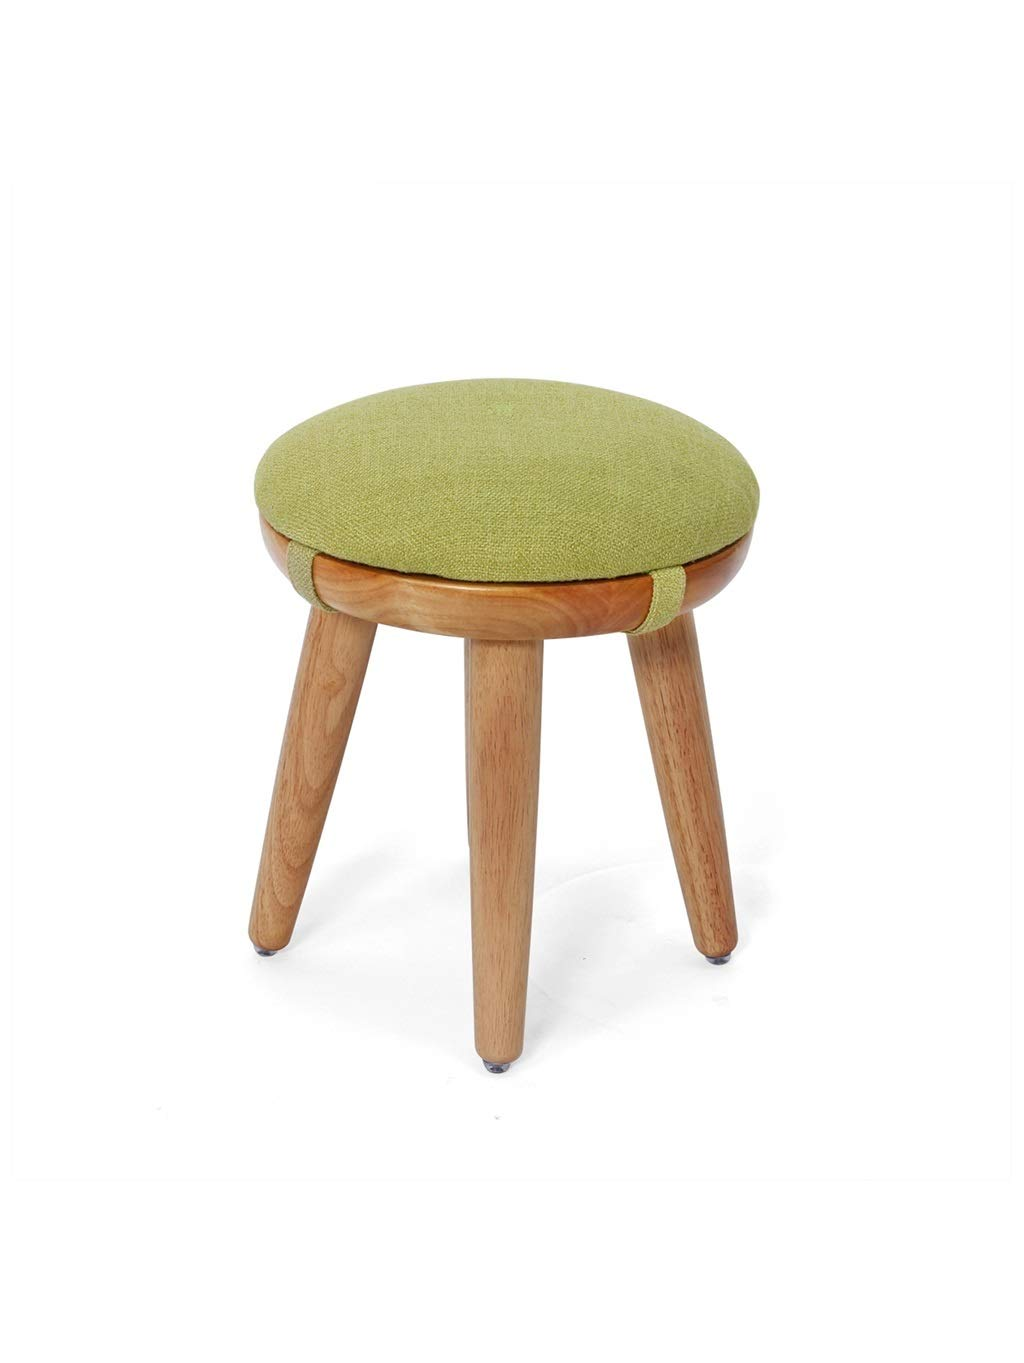 Light brown wood+cushion 30cm ZH STOOLS Round Stool, Full Solid Wood Seat Handmade Multifunction Ergonomics Small Bench for Footrest Makeup Change shoes (color   Light Brown Wood, Size   40CM)